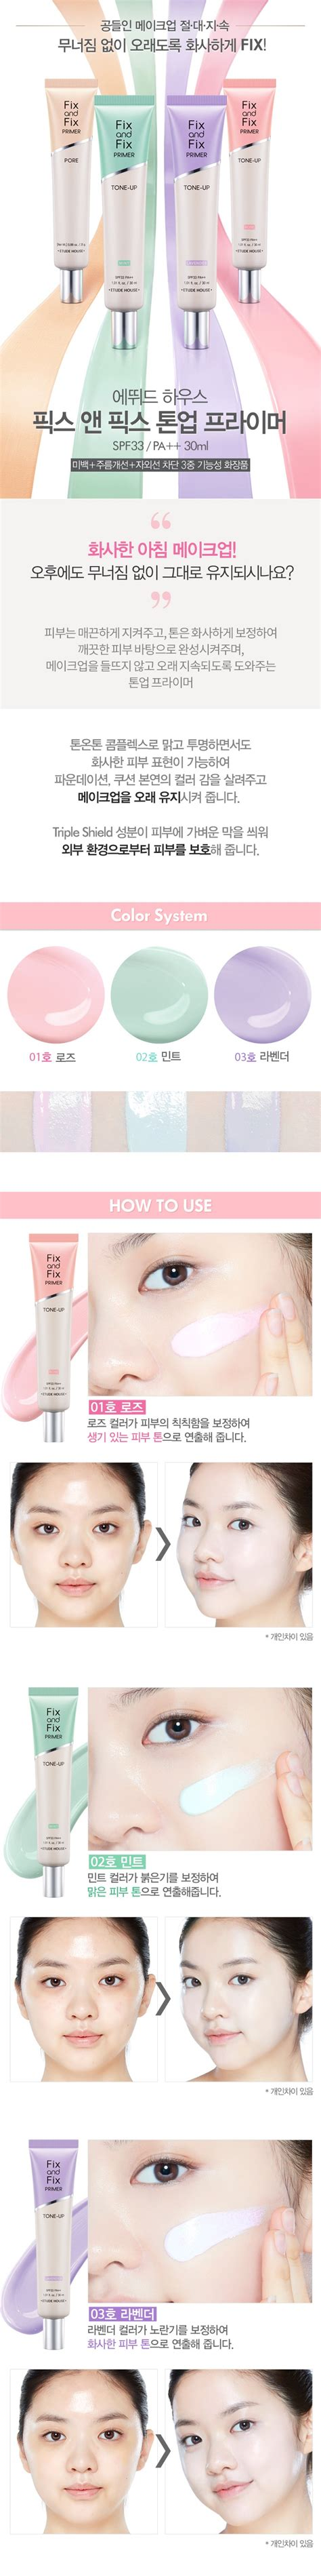 Etude Fix And Fix Primer testerkorea trend setter from korea